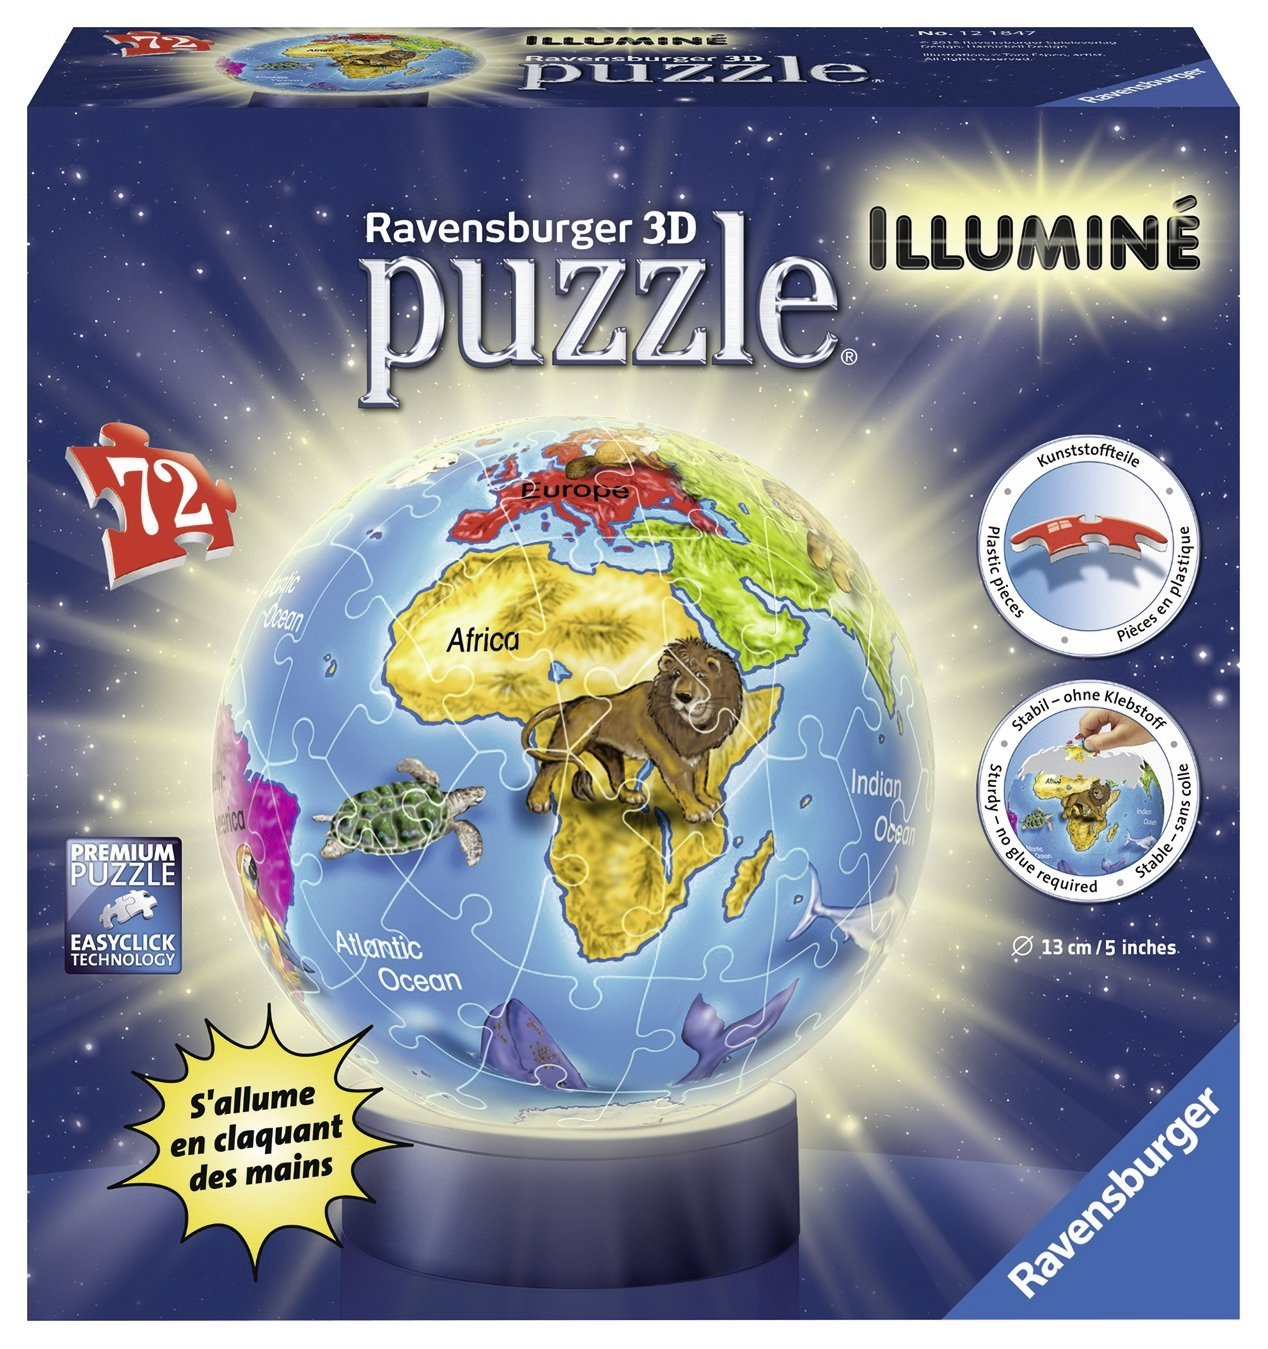 3d puzzle nachtlicht kindererde 72 teile ravensburger puzzle online kaufen. Black Bedroom Furniture Sets. Home Design Ideas